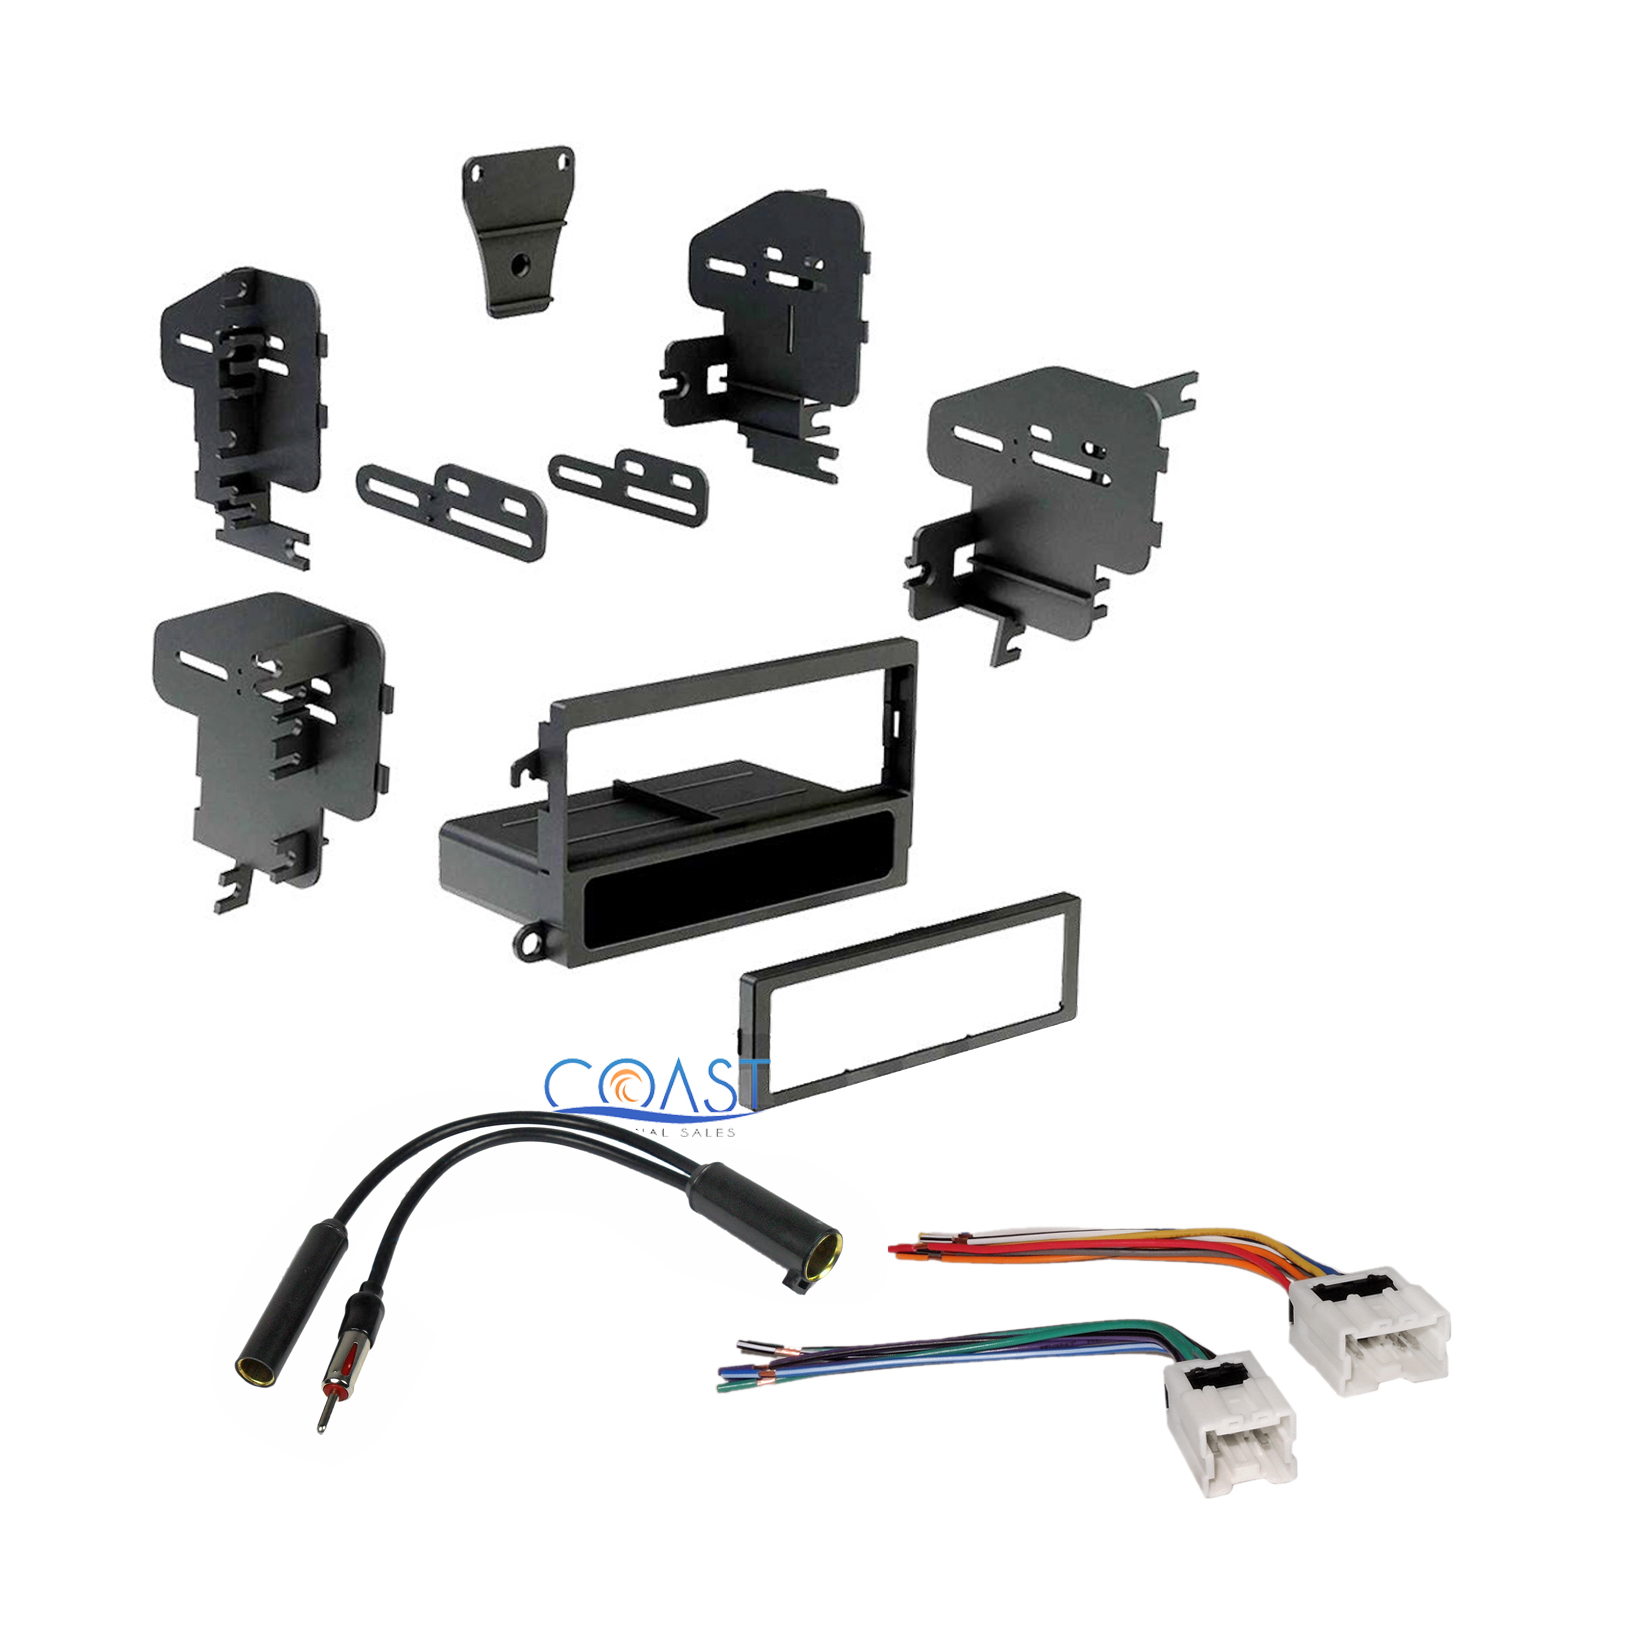 2008 ford fusion stereo wiring diagram mercury outboard motor parts mytouch diagrams